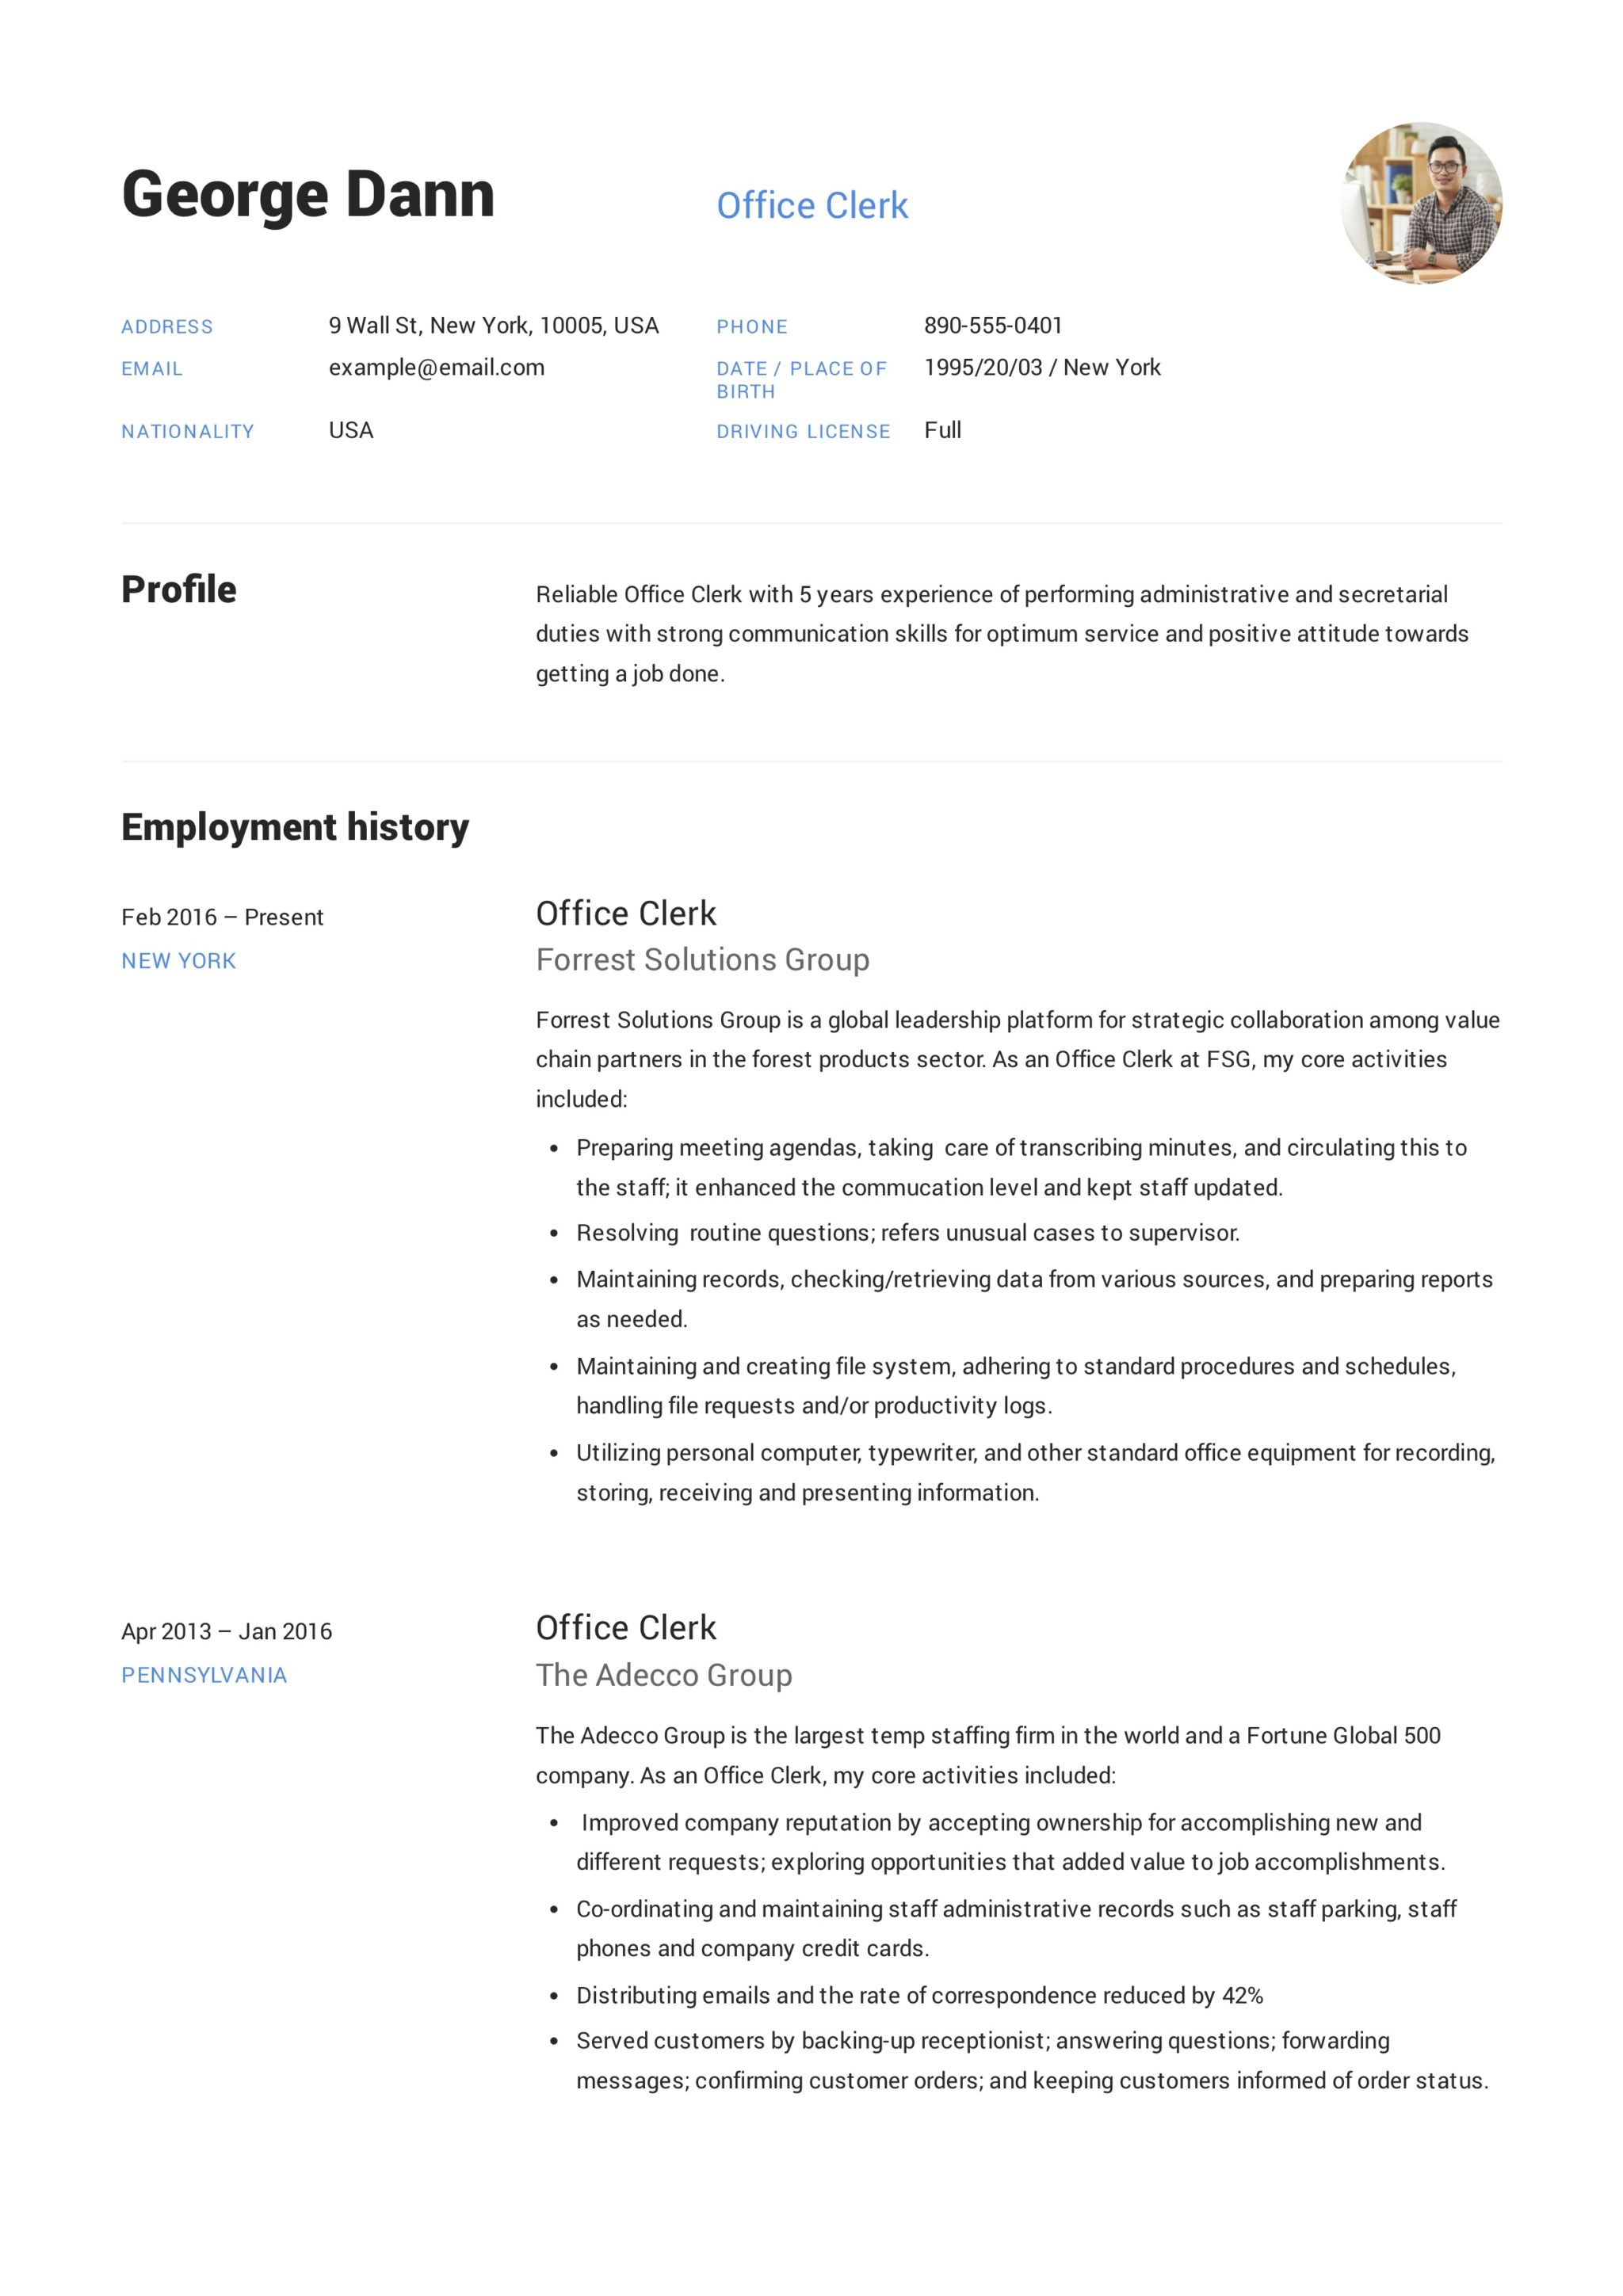 12 Office Clerk Resume Sample(s) - 2018 (Free Downloads)